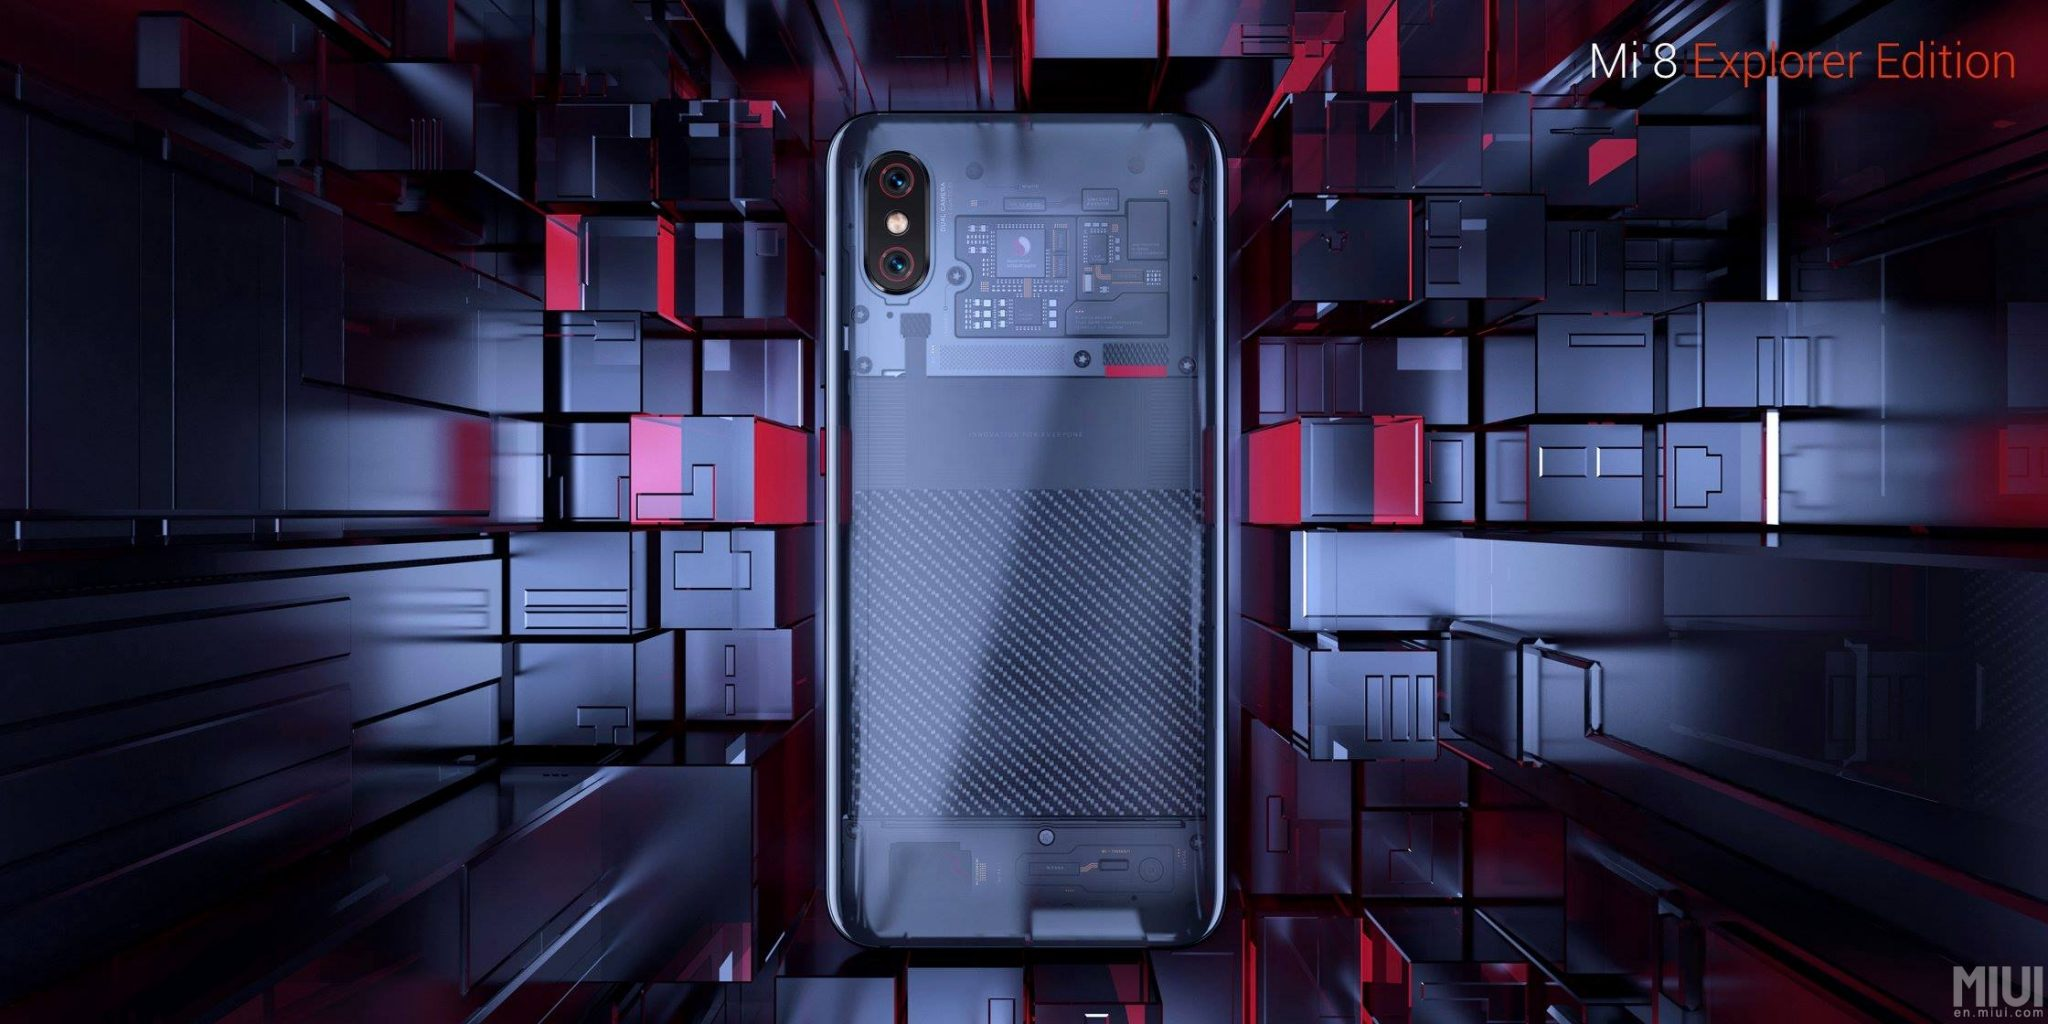 Xiaomi Mi 8 Explorer Edition comes with an in-screen fingerprint scanner 1